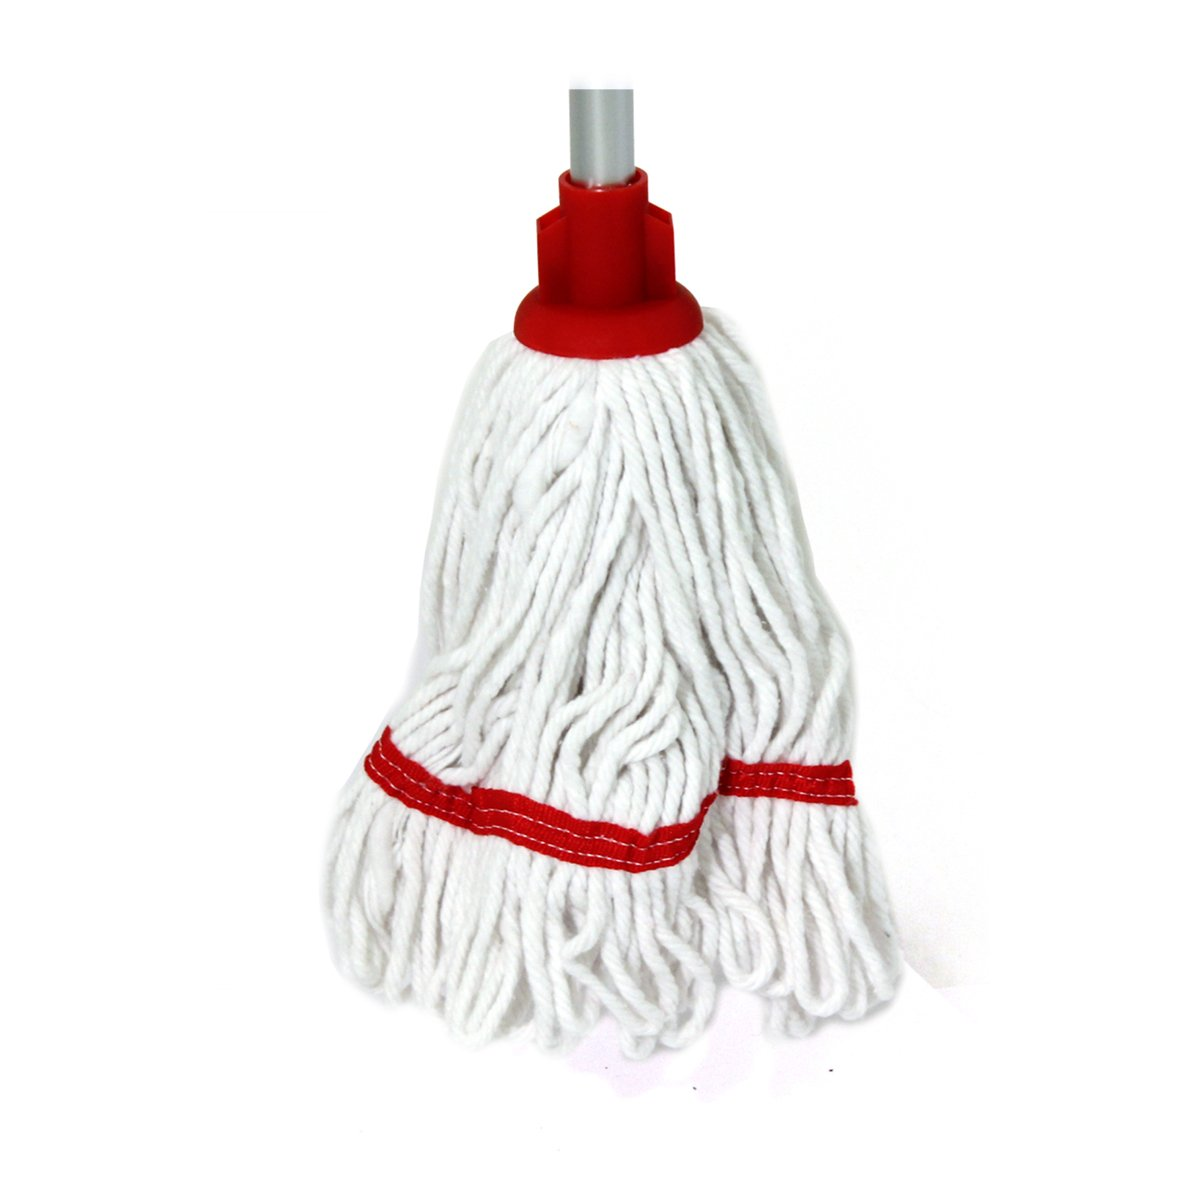 Bentley Industrial HR/BS.35/B Mini Blended Socket Cotton Mop with Cap and Banding, Blue Charles Bentley & Son Ltd